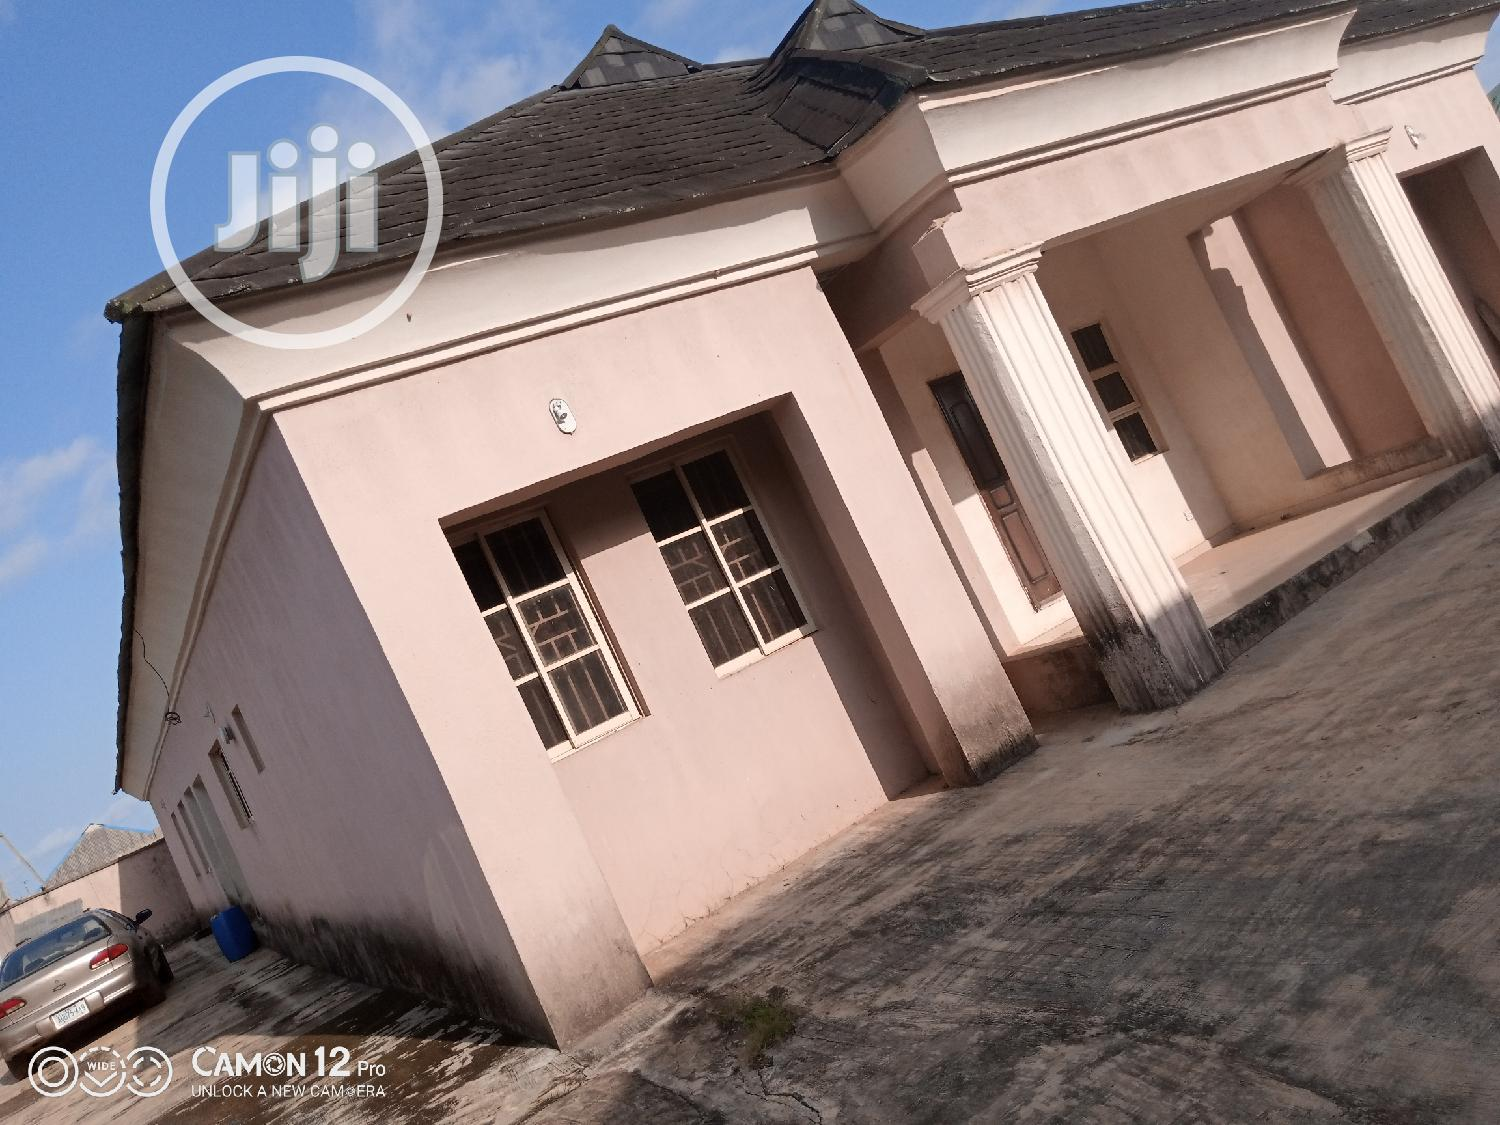 Standard 2bedroom Flat For Rent In Epe Lagos State Nigeria